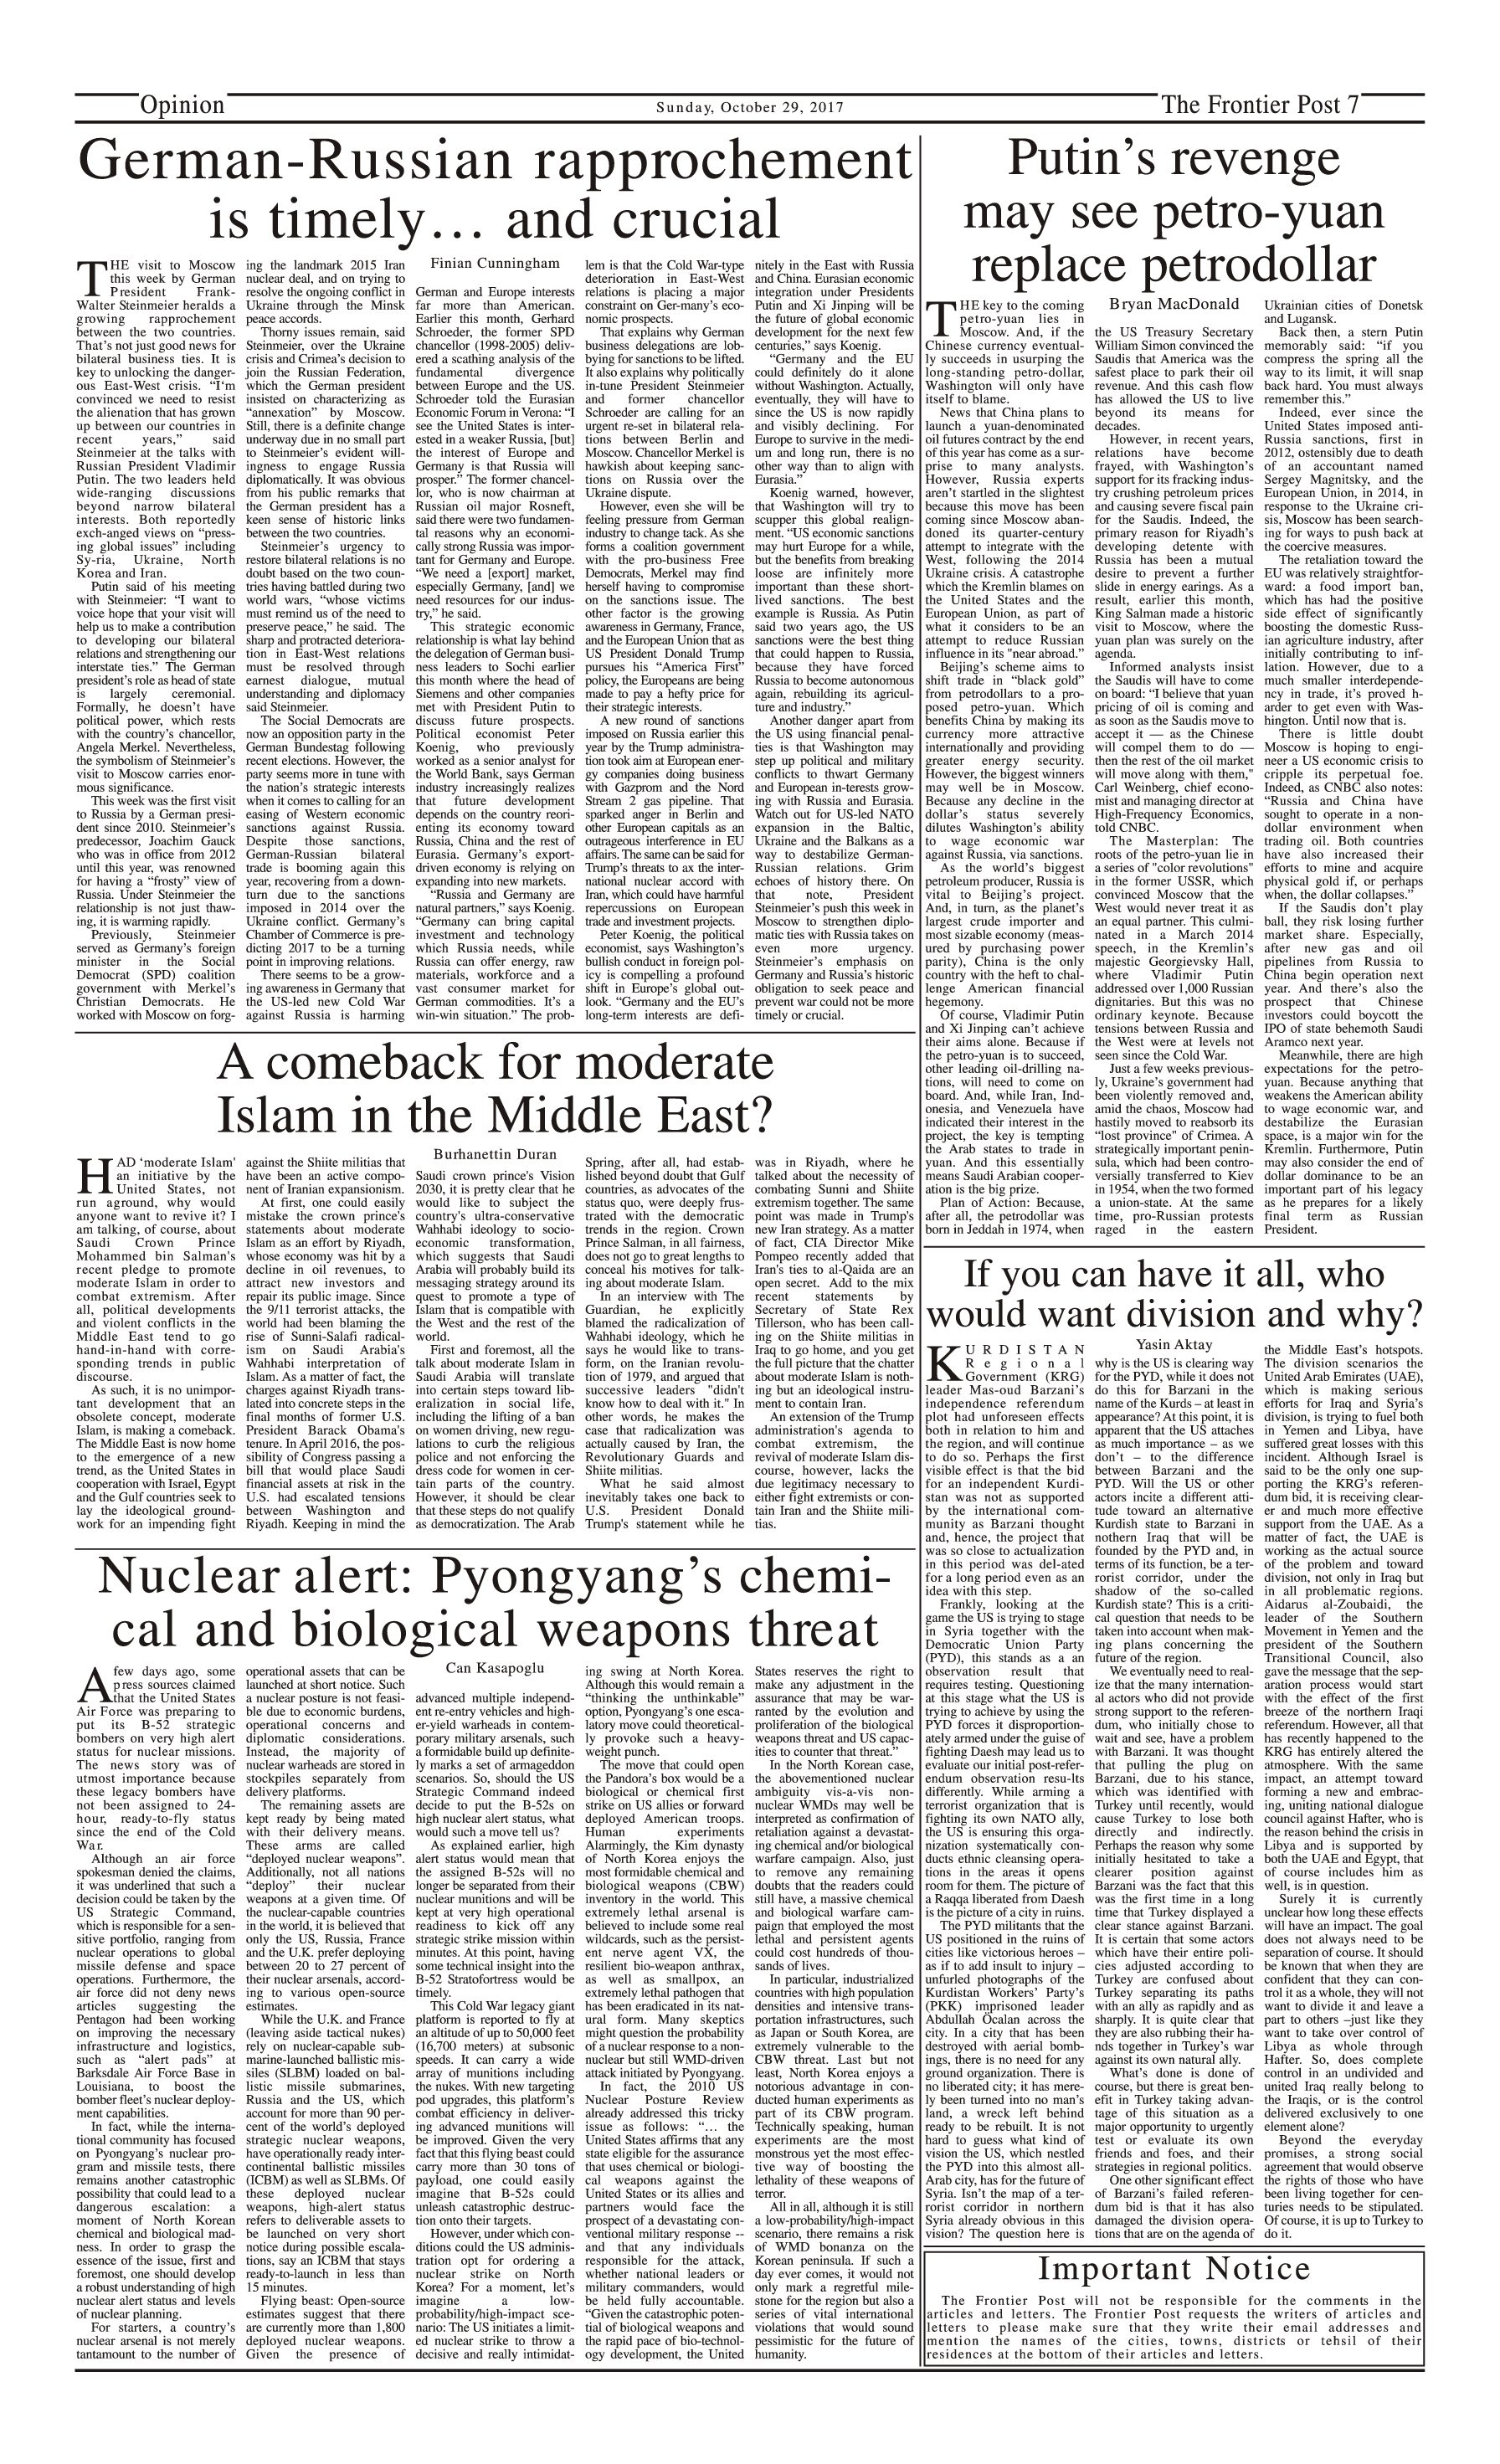 Opinion Page 29-10